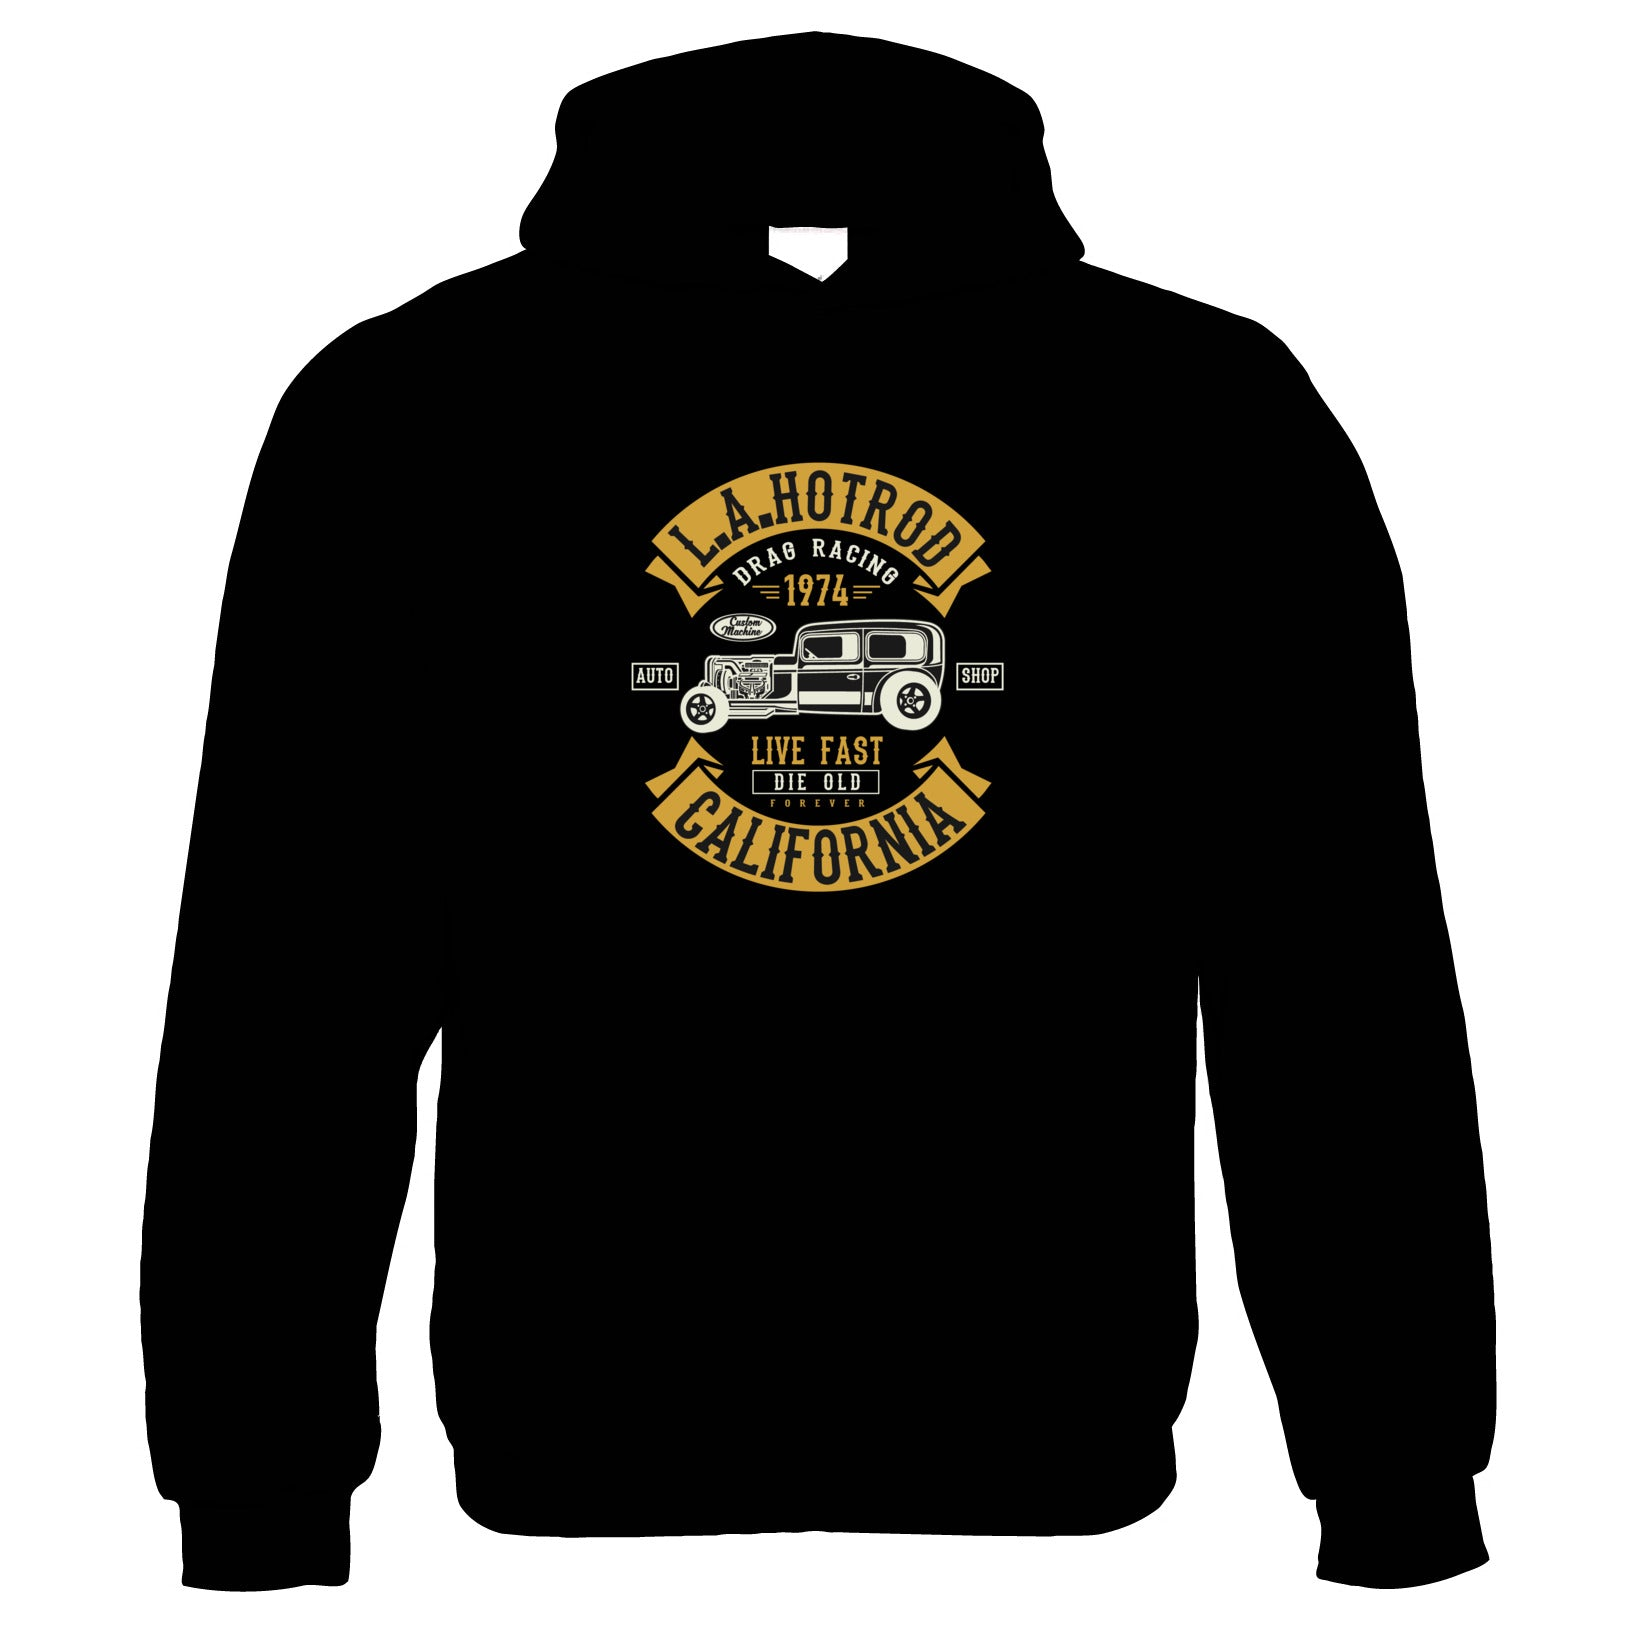 LA Hot Rod California| Funny Hoodie |Looking Good Old Handsome Hotrod Classic Racer Race Confidence Hot Rod Car | Hoodie